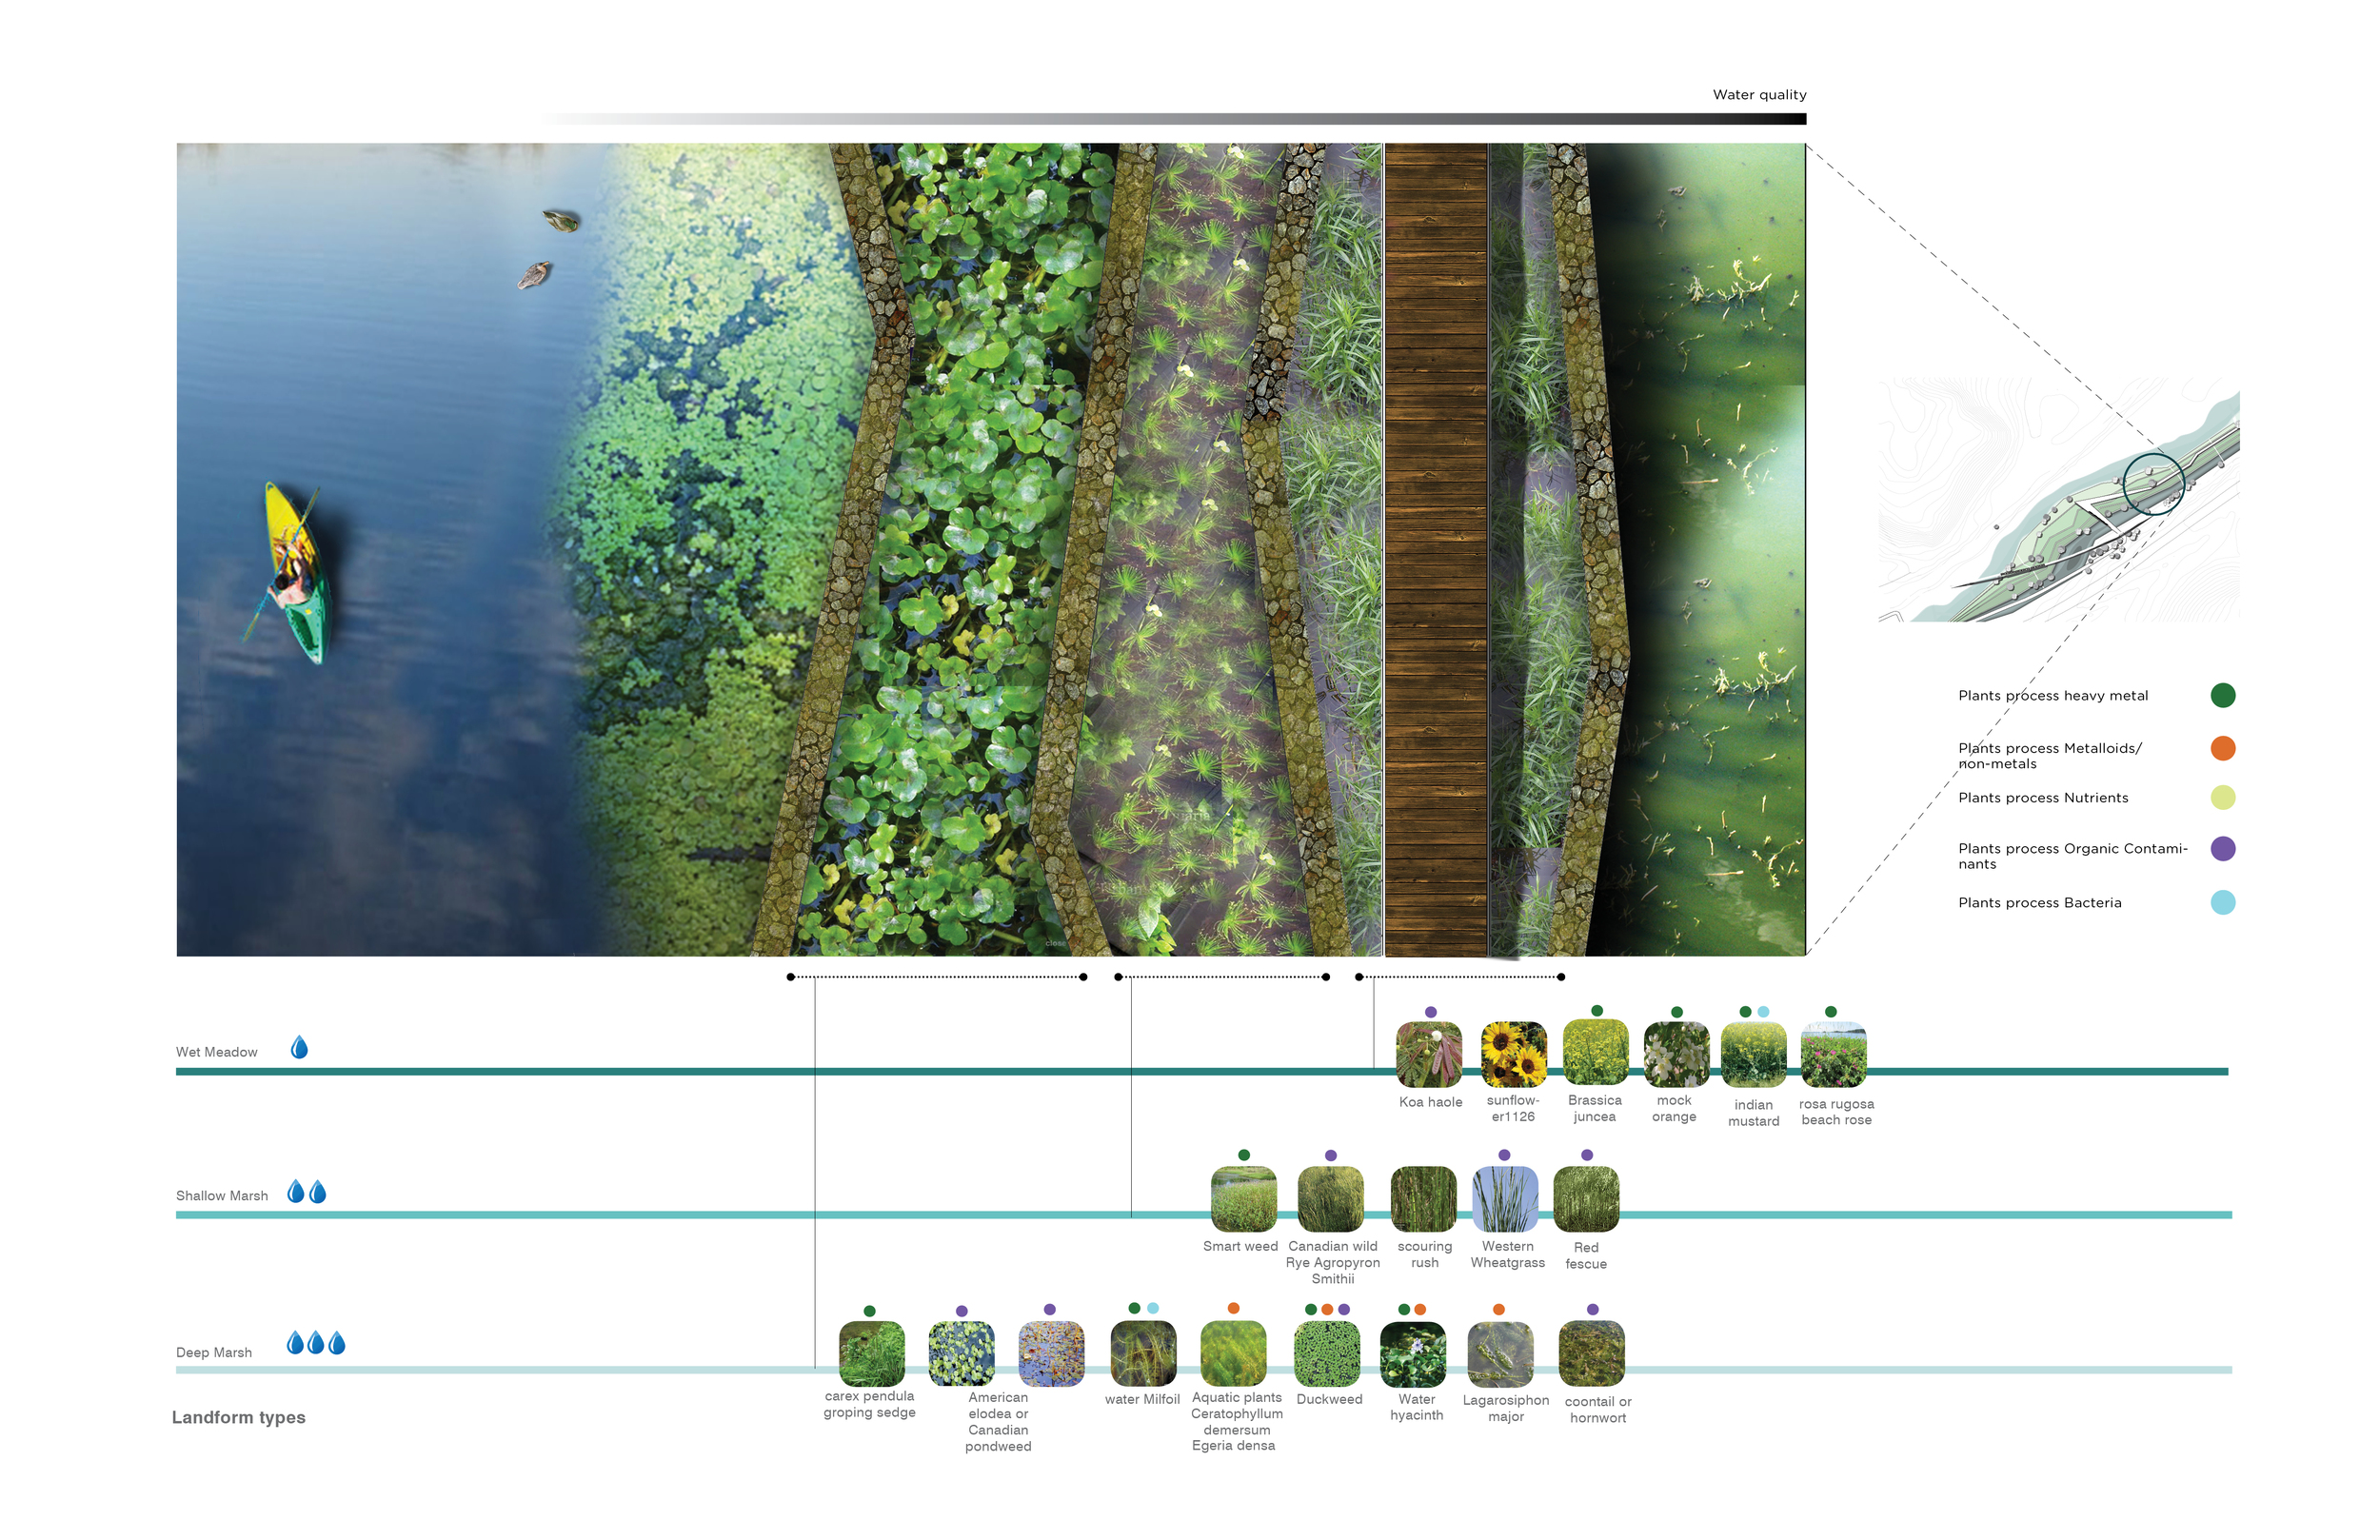 Figure 9: Configuration of the proposed constructed wetlands/bioremediation cells. Each type of plants processes certain type water pollution.